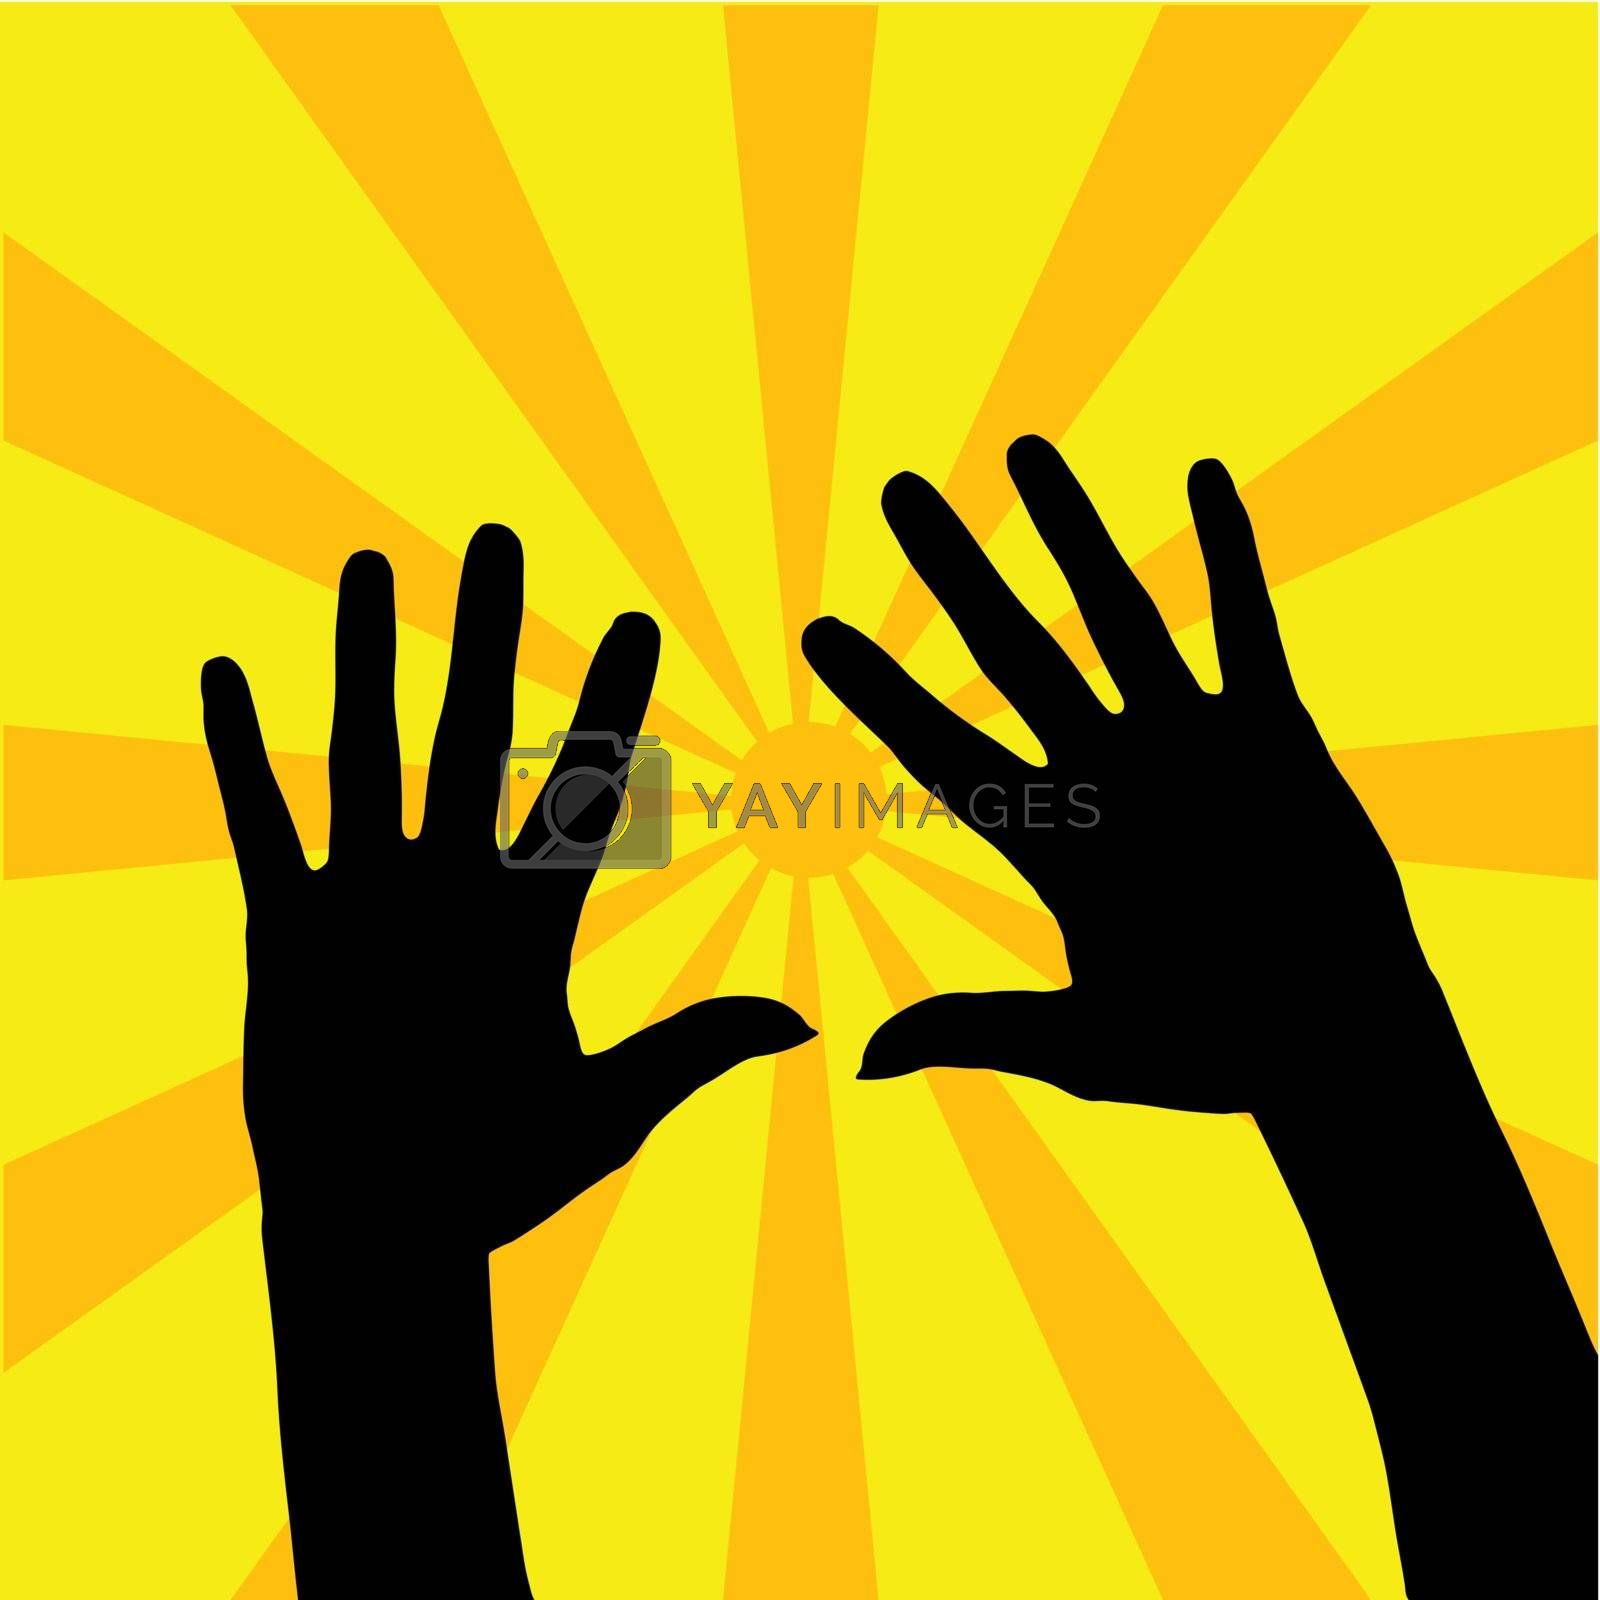 Royalty free image of Open Hands Illustration by ajn